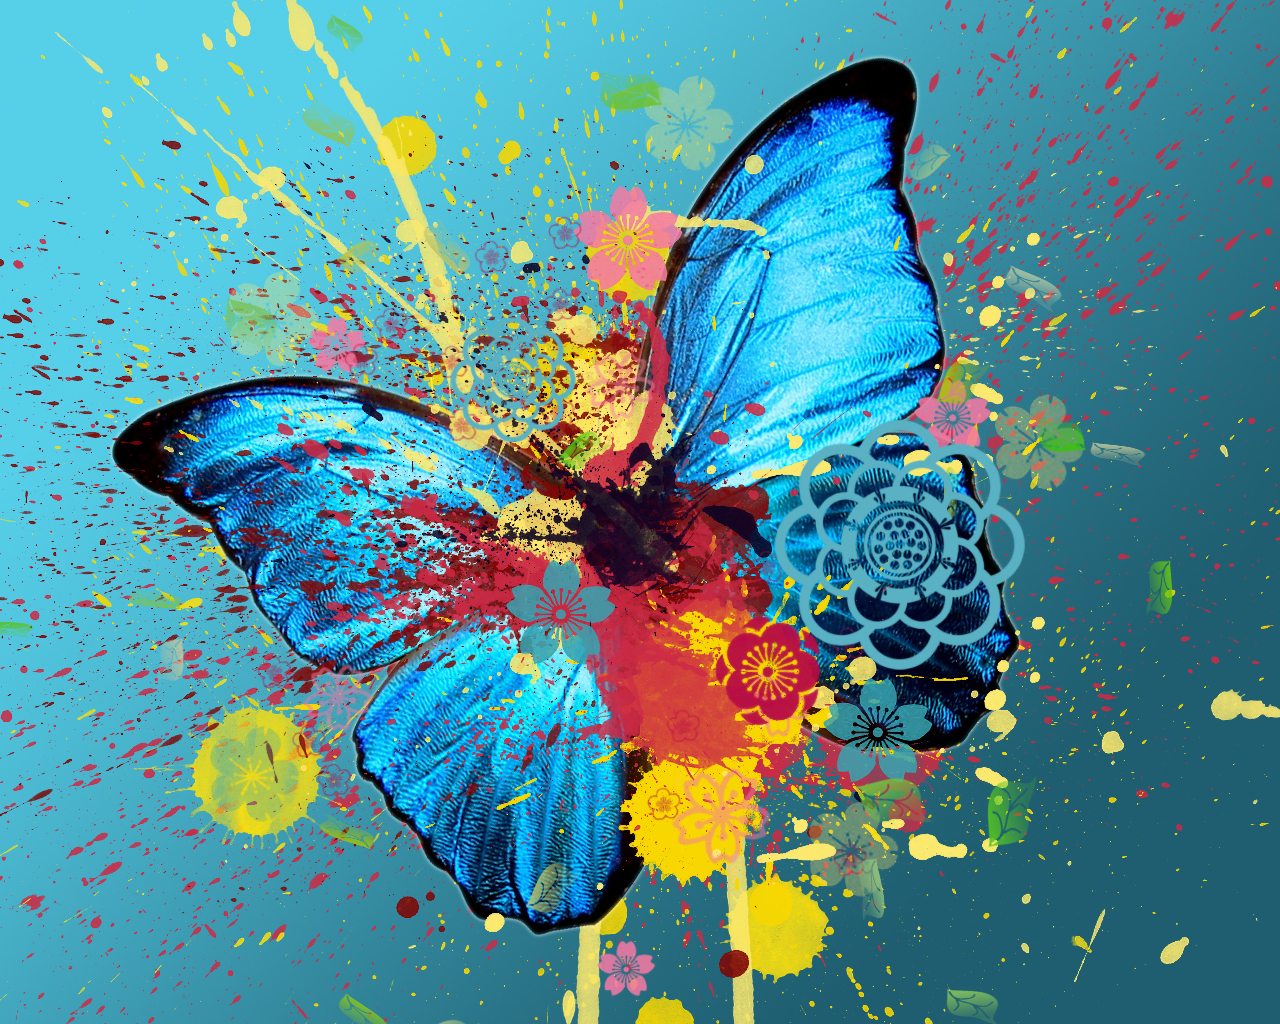 http://images2.fanpop.com/image/photos/12100000/Butterfly-Madness-yorkshire_rose-12125923-1280-1024.jpg